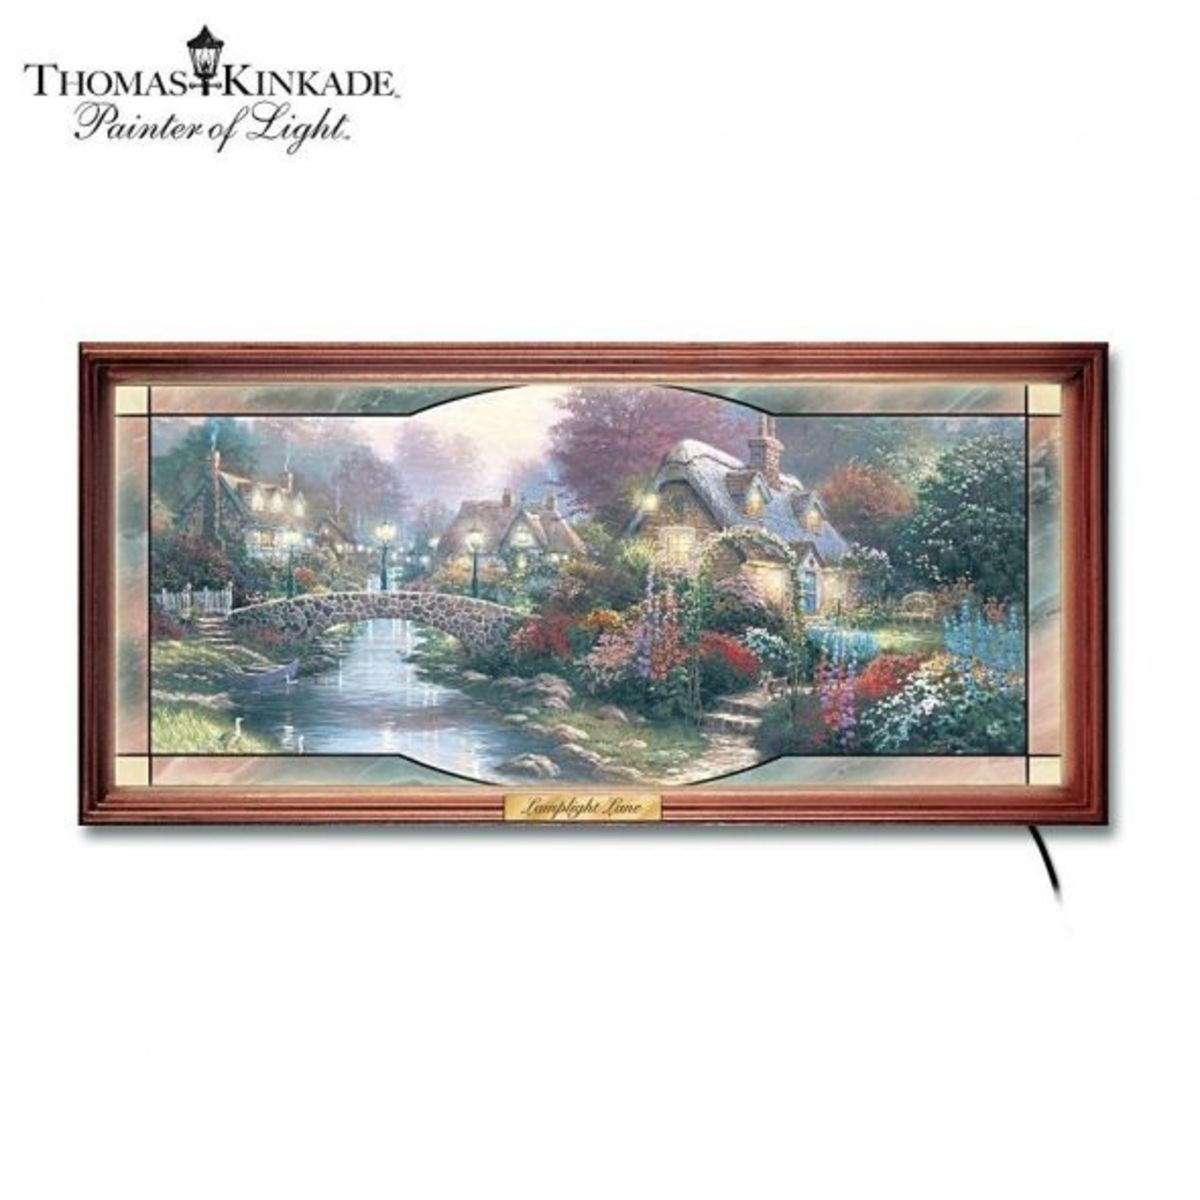 Another Kinkade garden has been designed for this stained glass frame for the home décor.